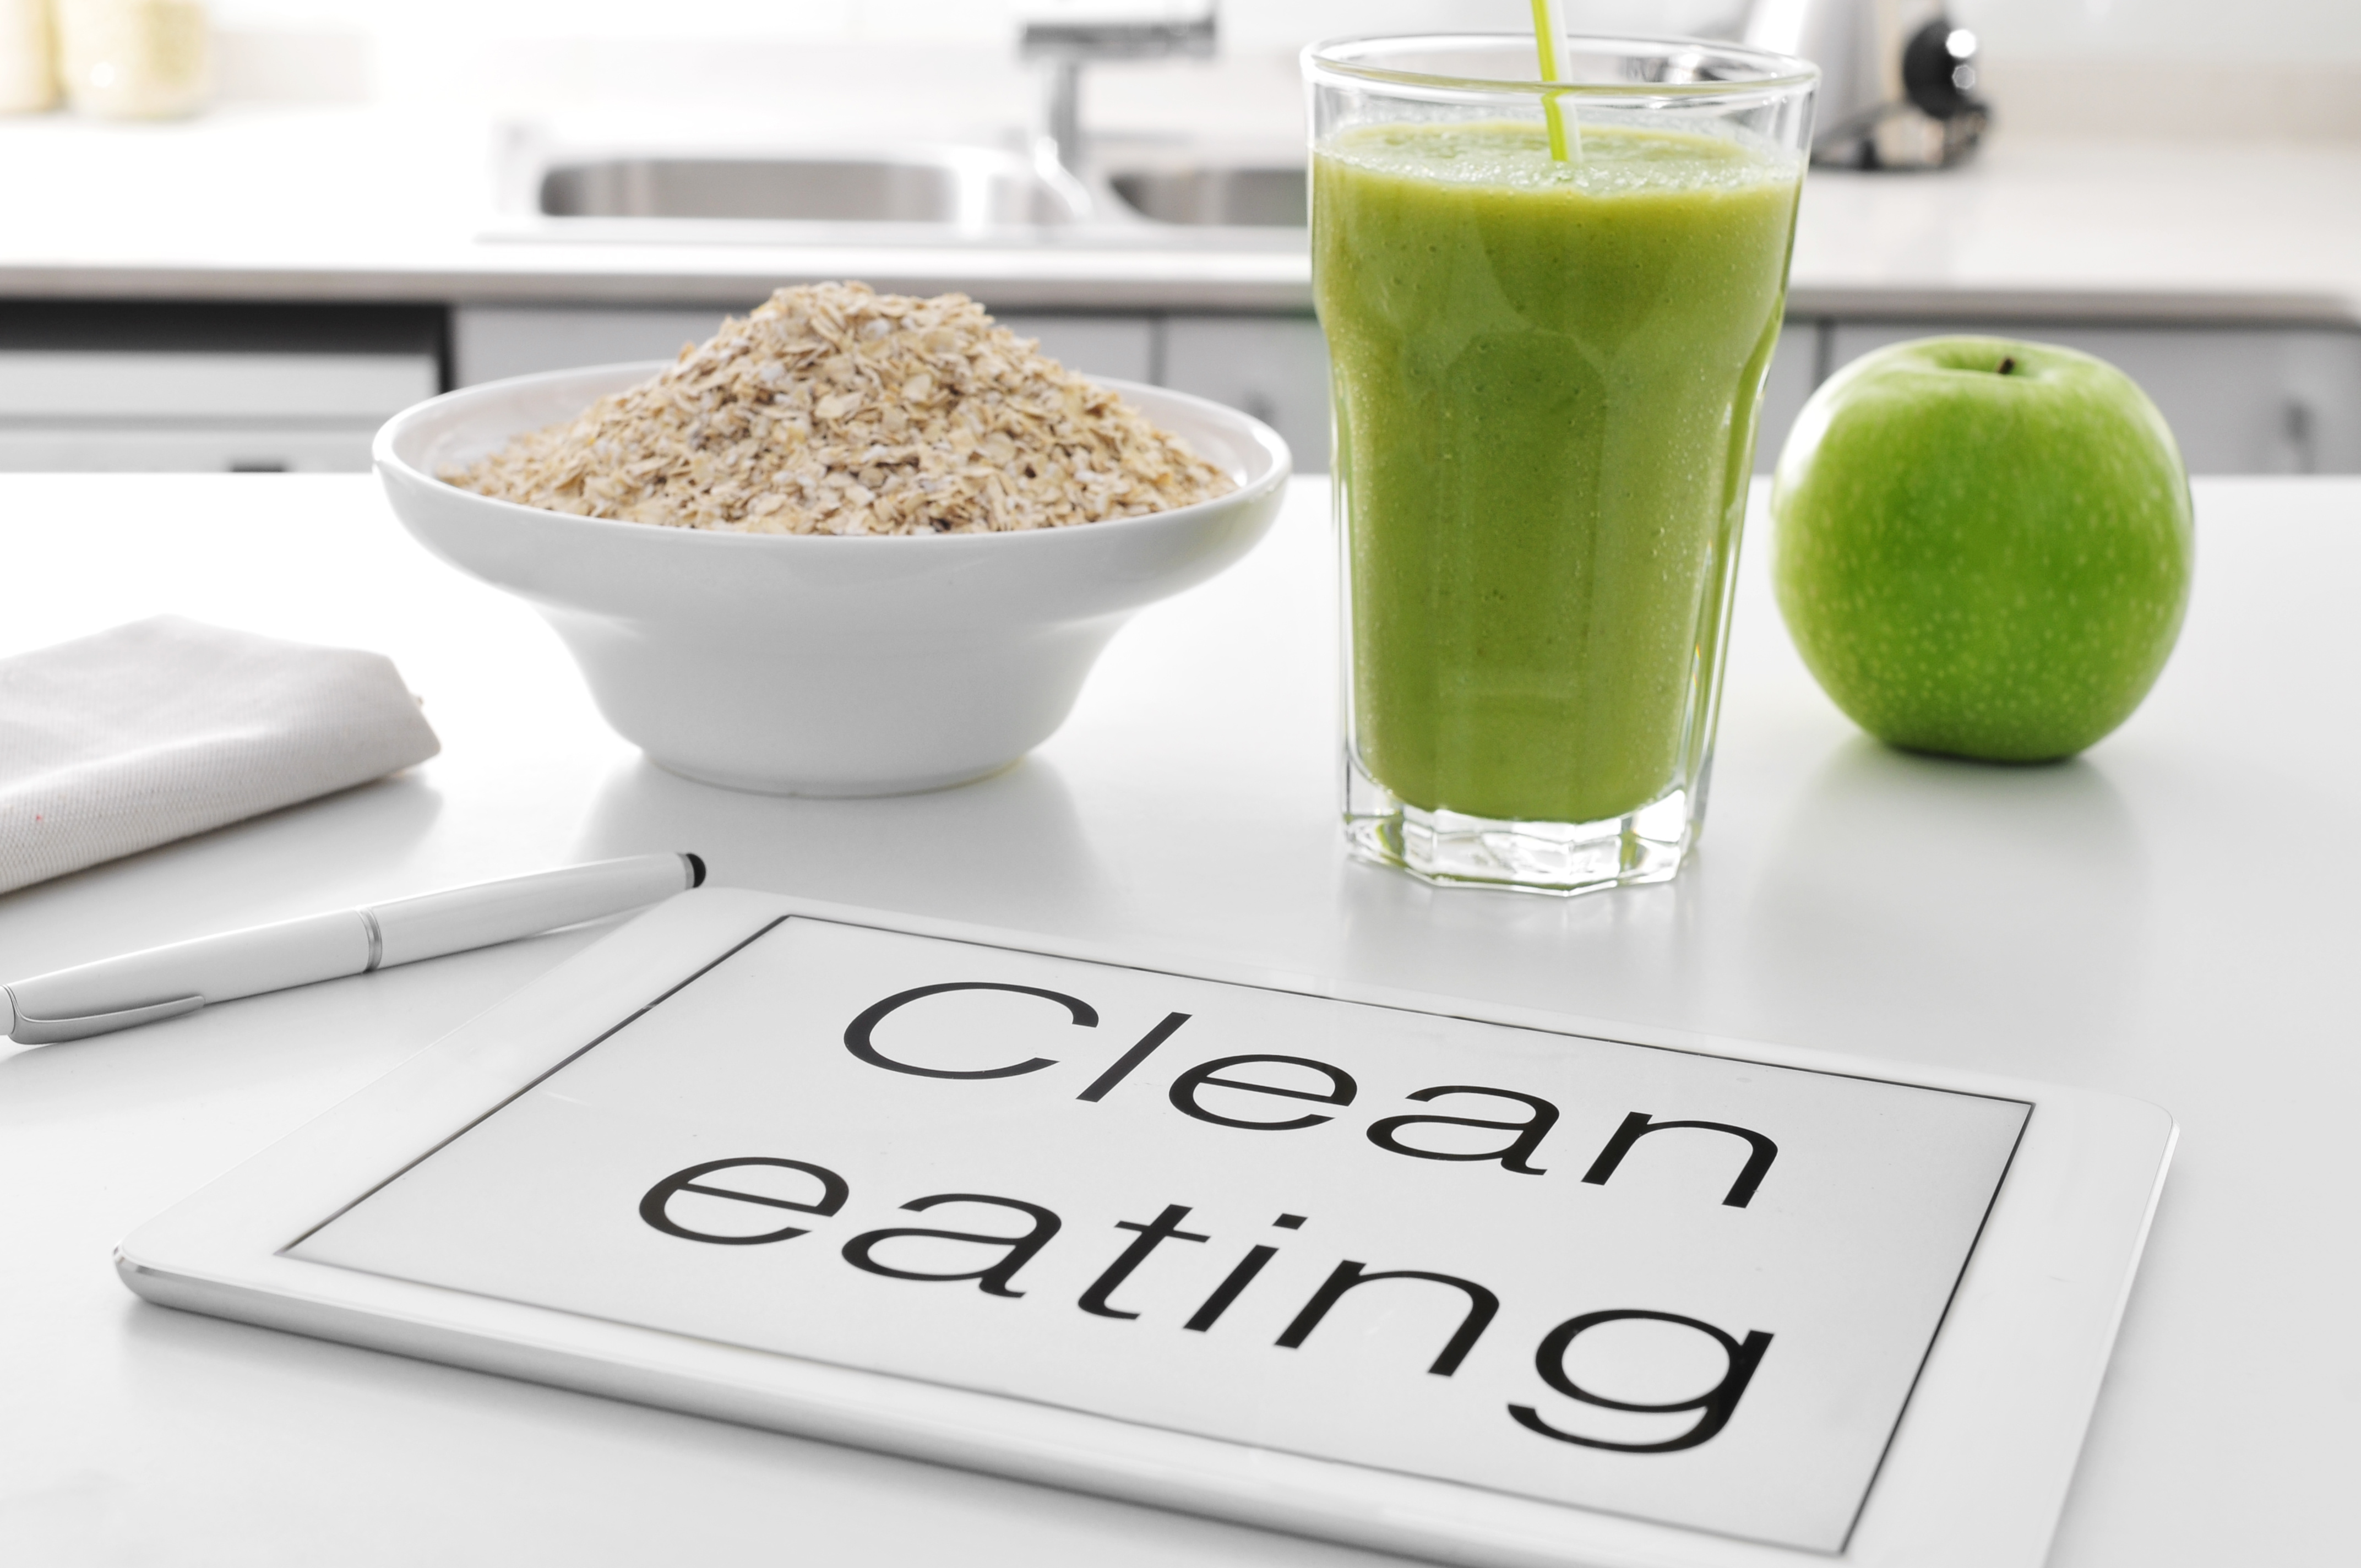 """While there's no official definition for """"clean"""" in the context of clean eating, it typically means food that's whole or minimally processed, organic, natural, local and fresh."""